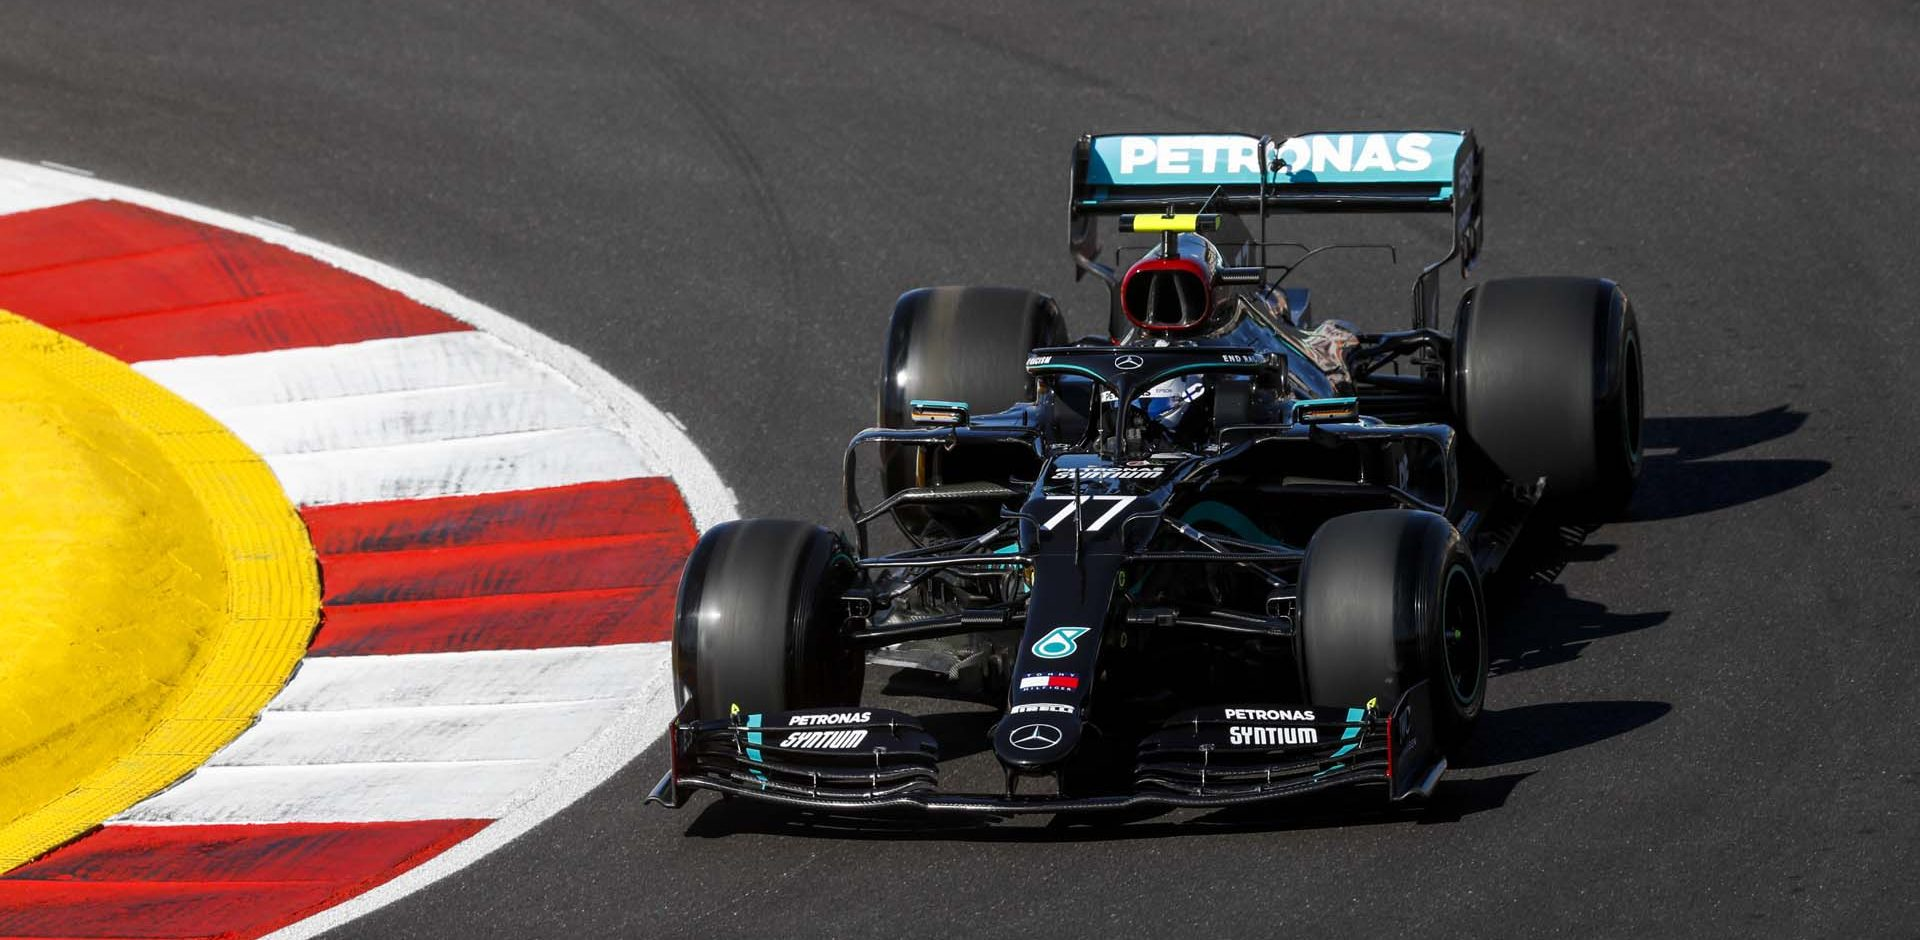 2020 Portuguese Grand Prix, Friday - LAT Images Valtteri Bottas Mercedes